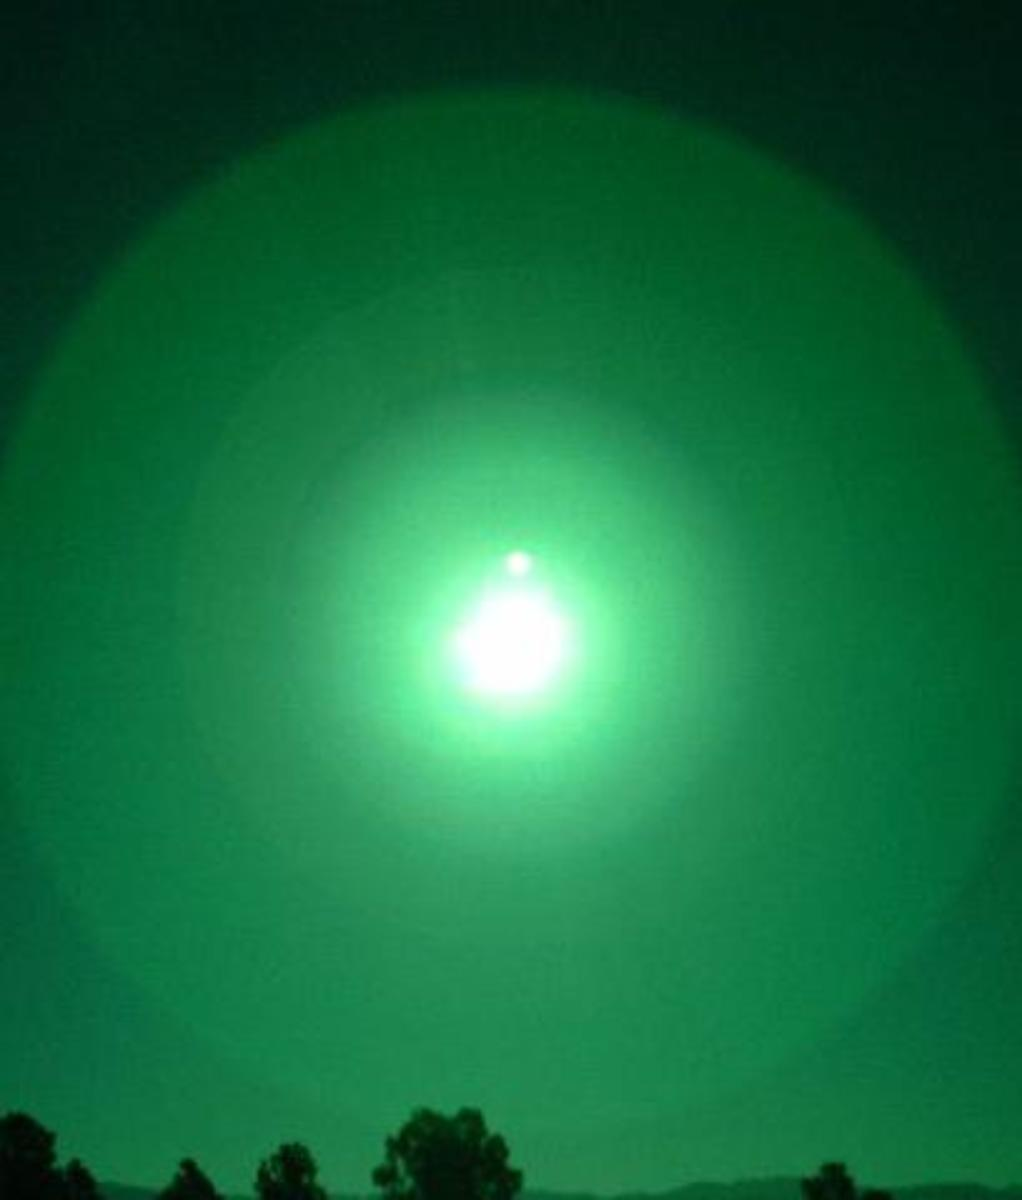 This image using a welders visor for a filter shows a good image of another planet near the Sun.